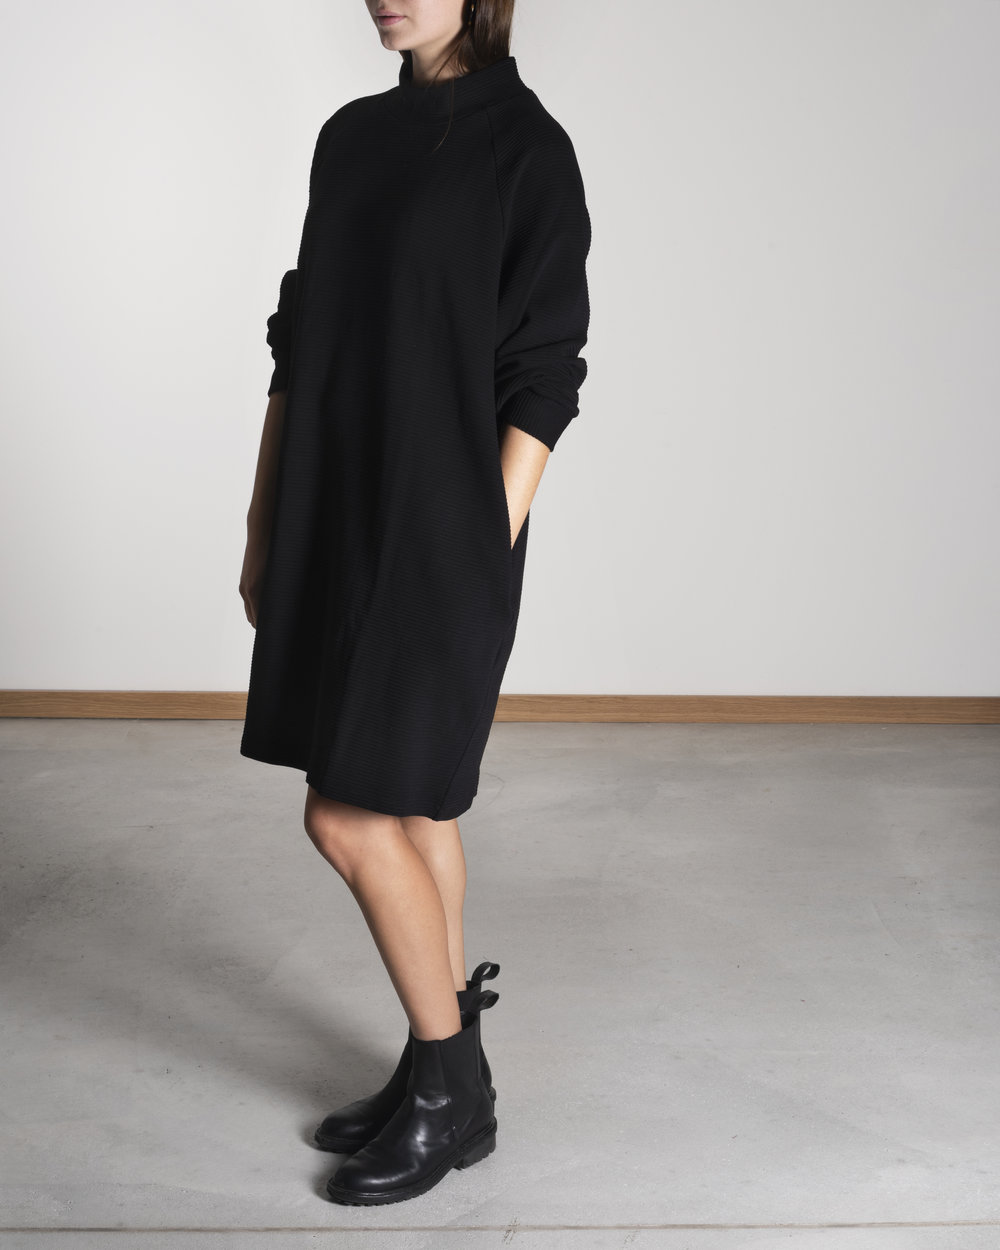 MOMO dress ripp black .jpg